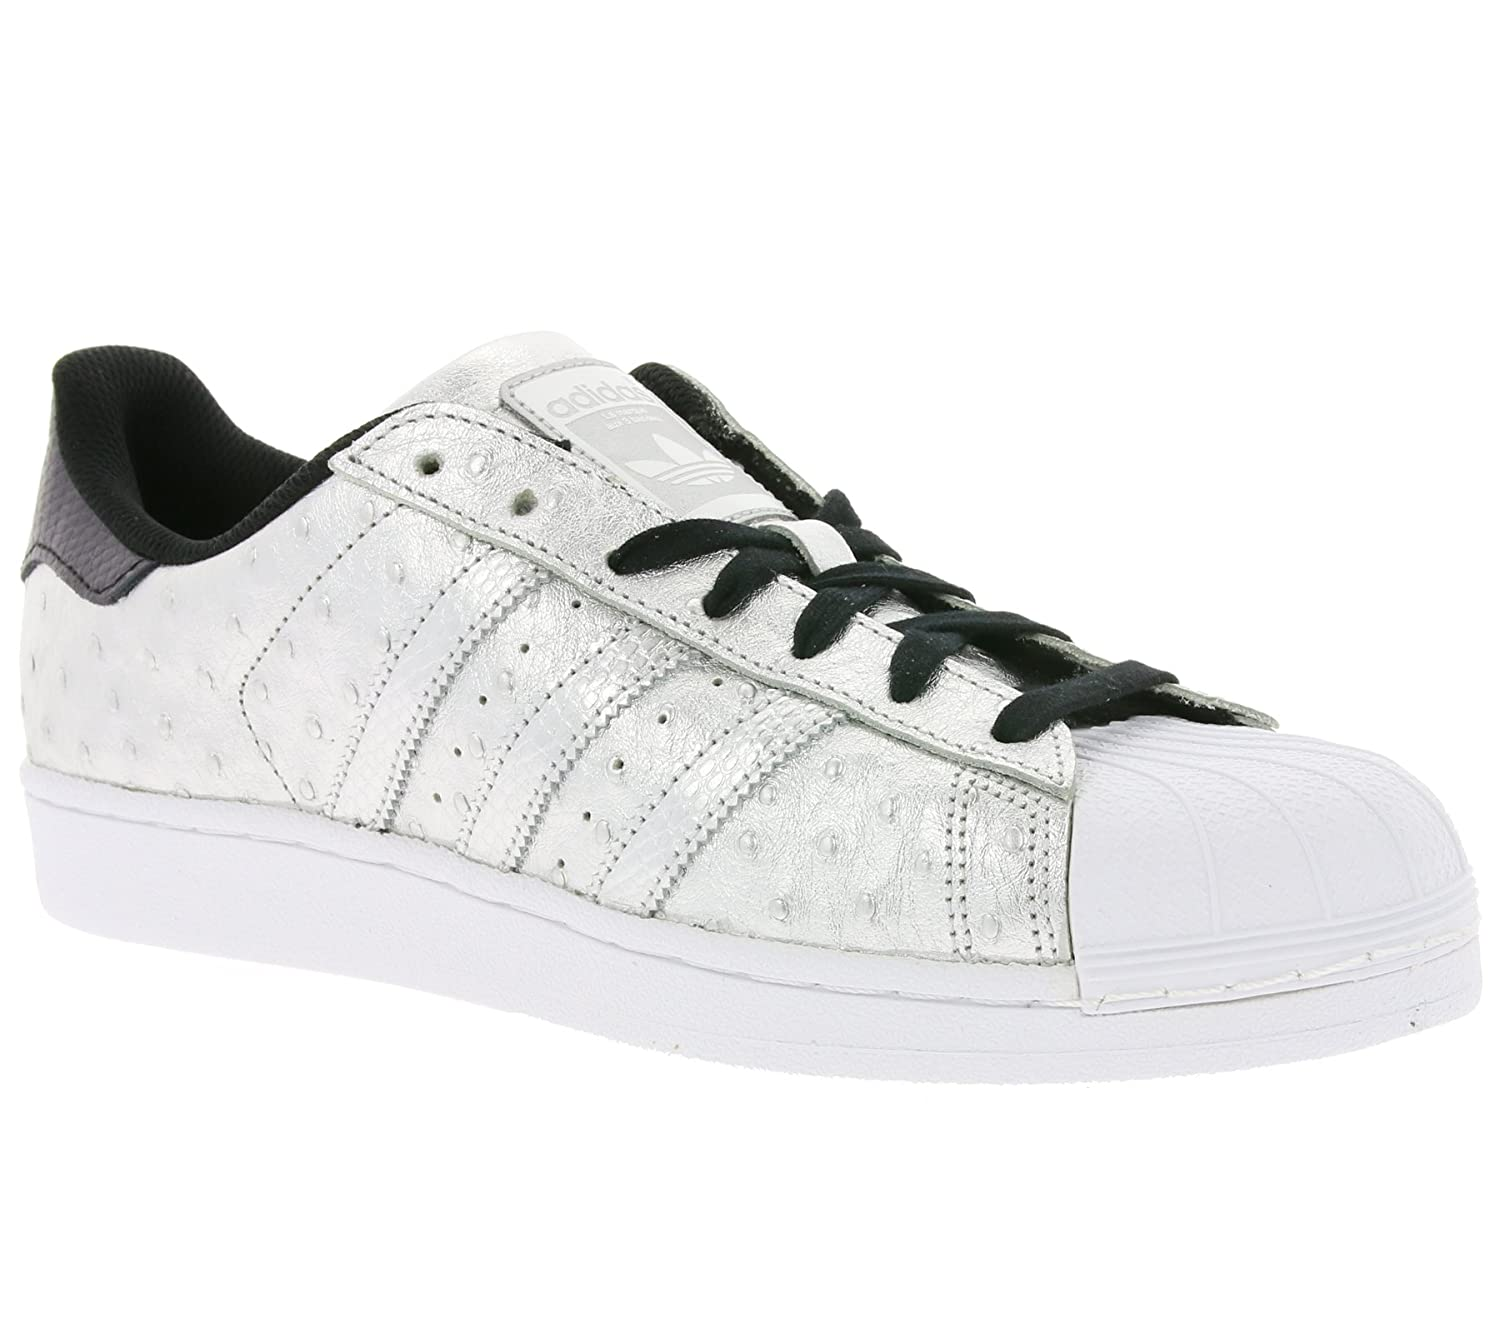 adidas Originals Herren Sneakers Superstar Ray Blue S75881 Silber